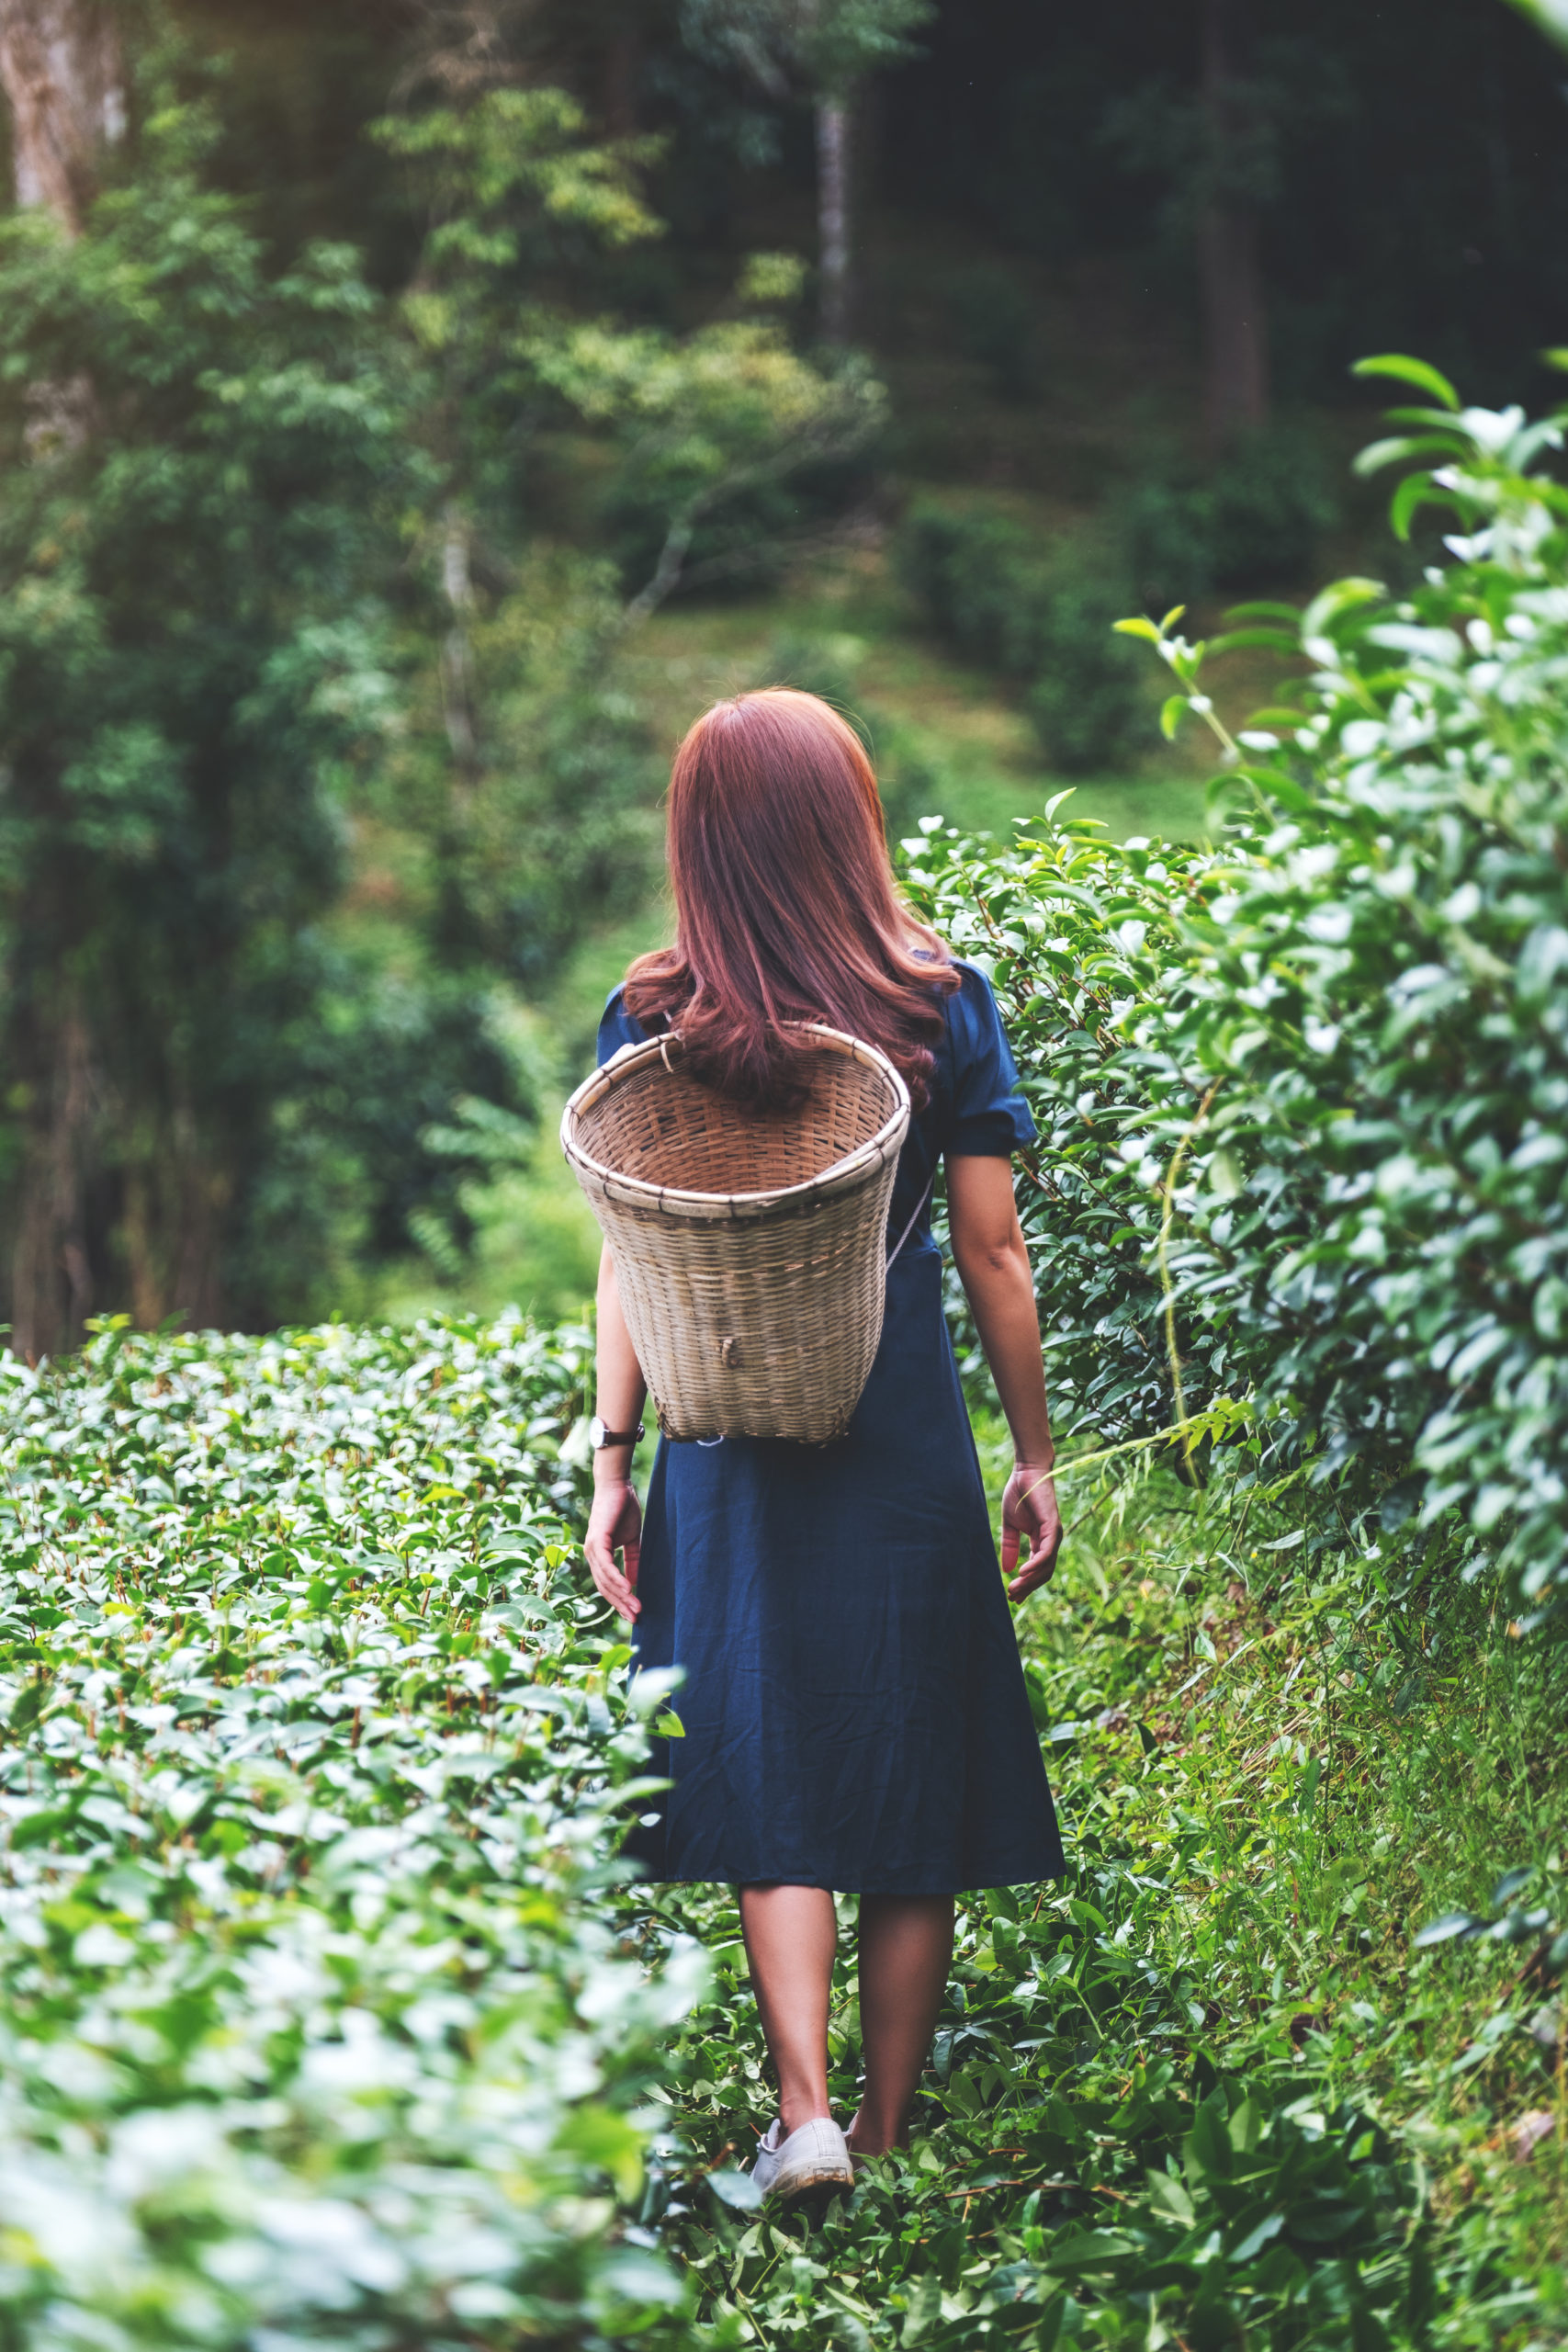 Rear view image of a woman walking and picking tea leaf in a highland tea plantation